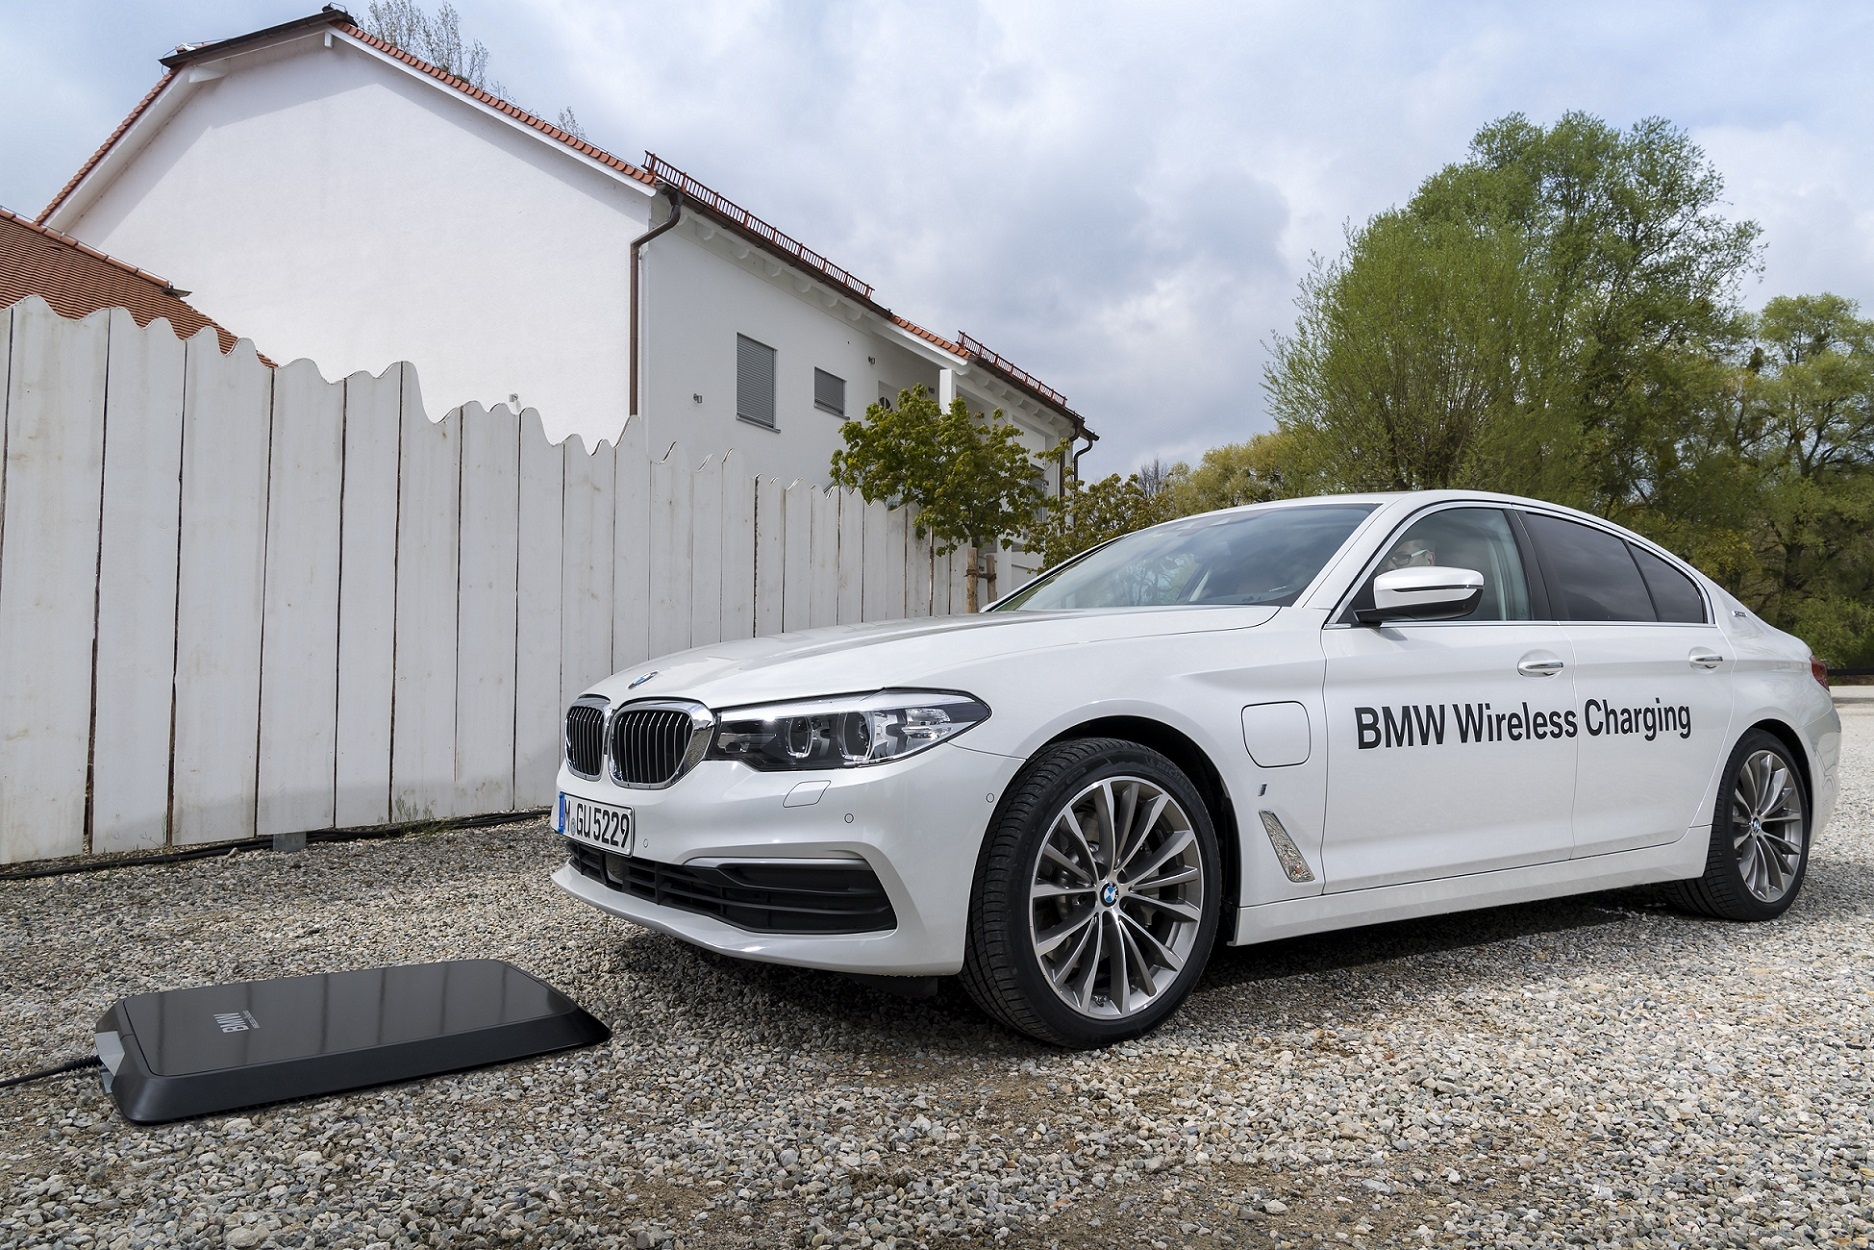 BMW to convert personal garages into inductive EV charging stations